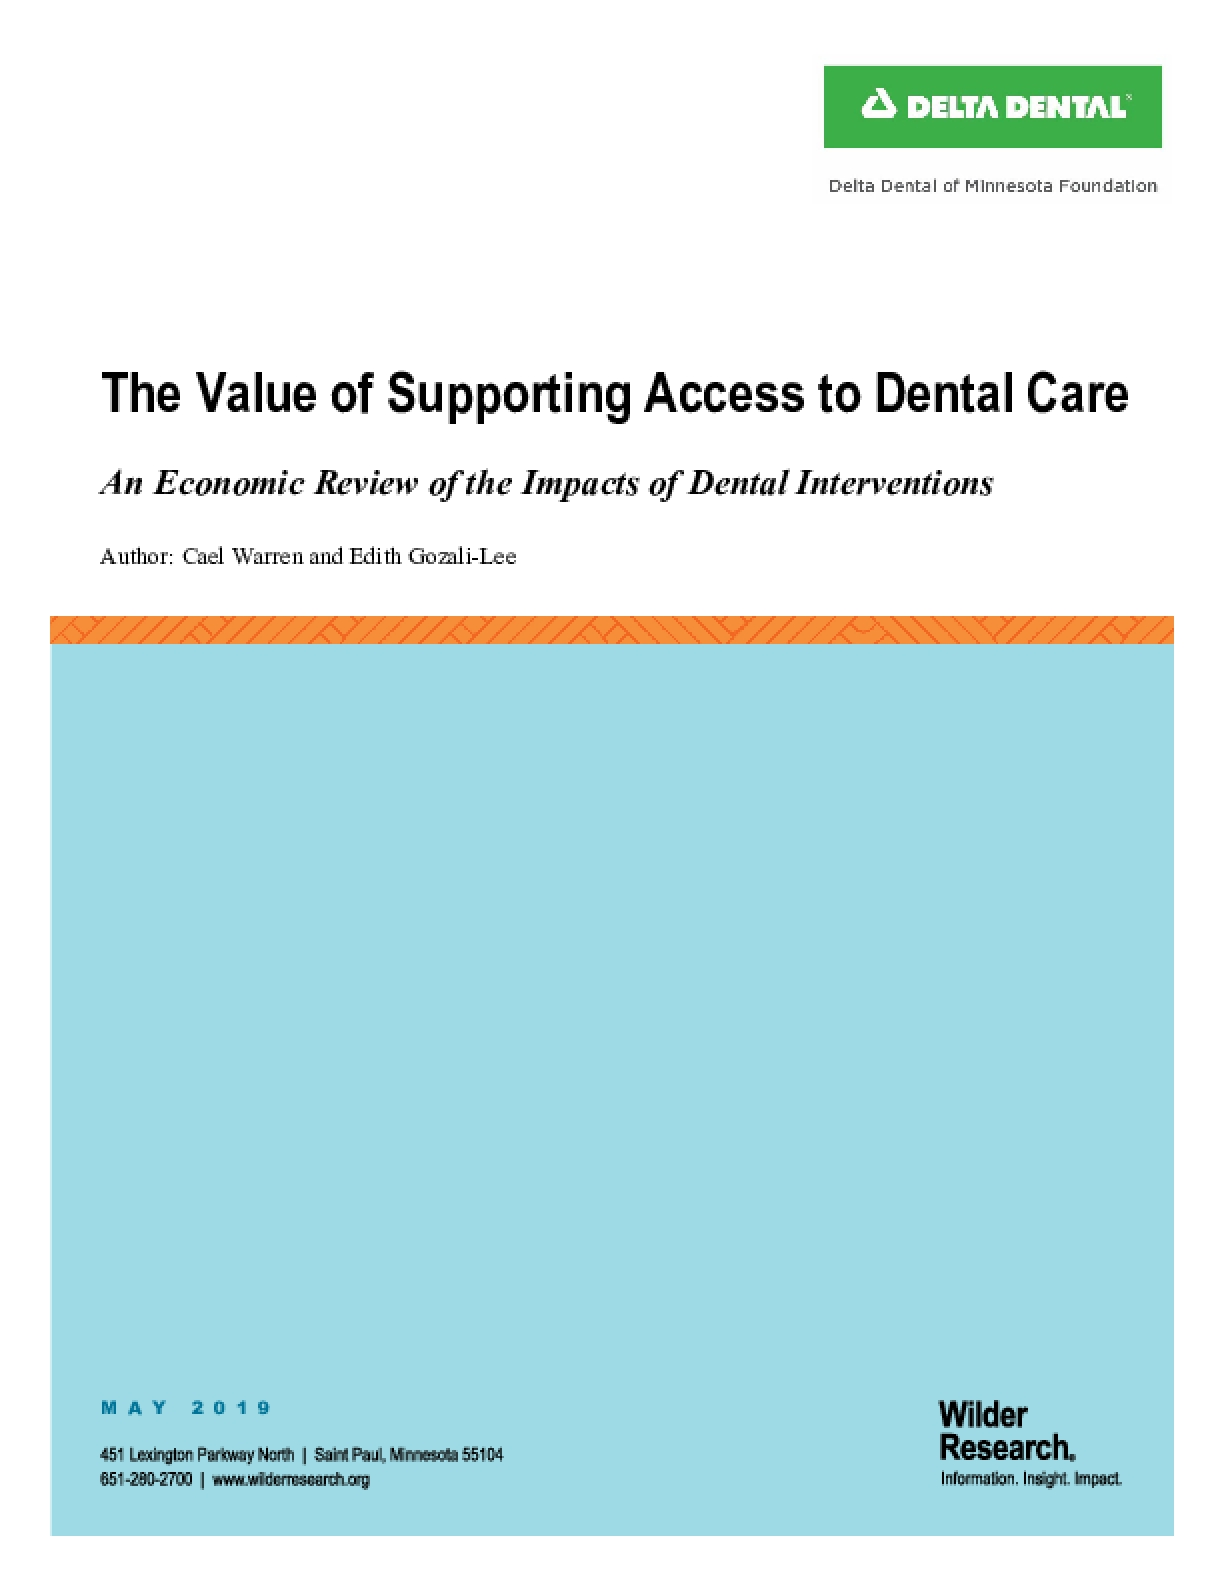 The Value of Supporting Access to Dental Care: An Economic Review of the Impacts of Dental Interventions